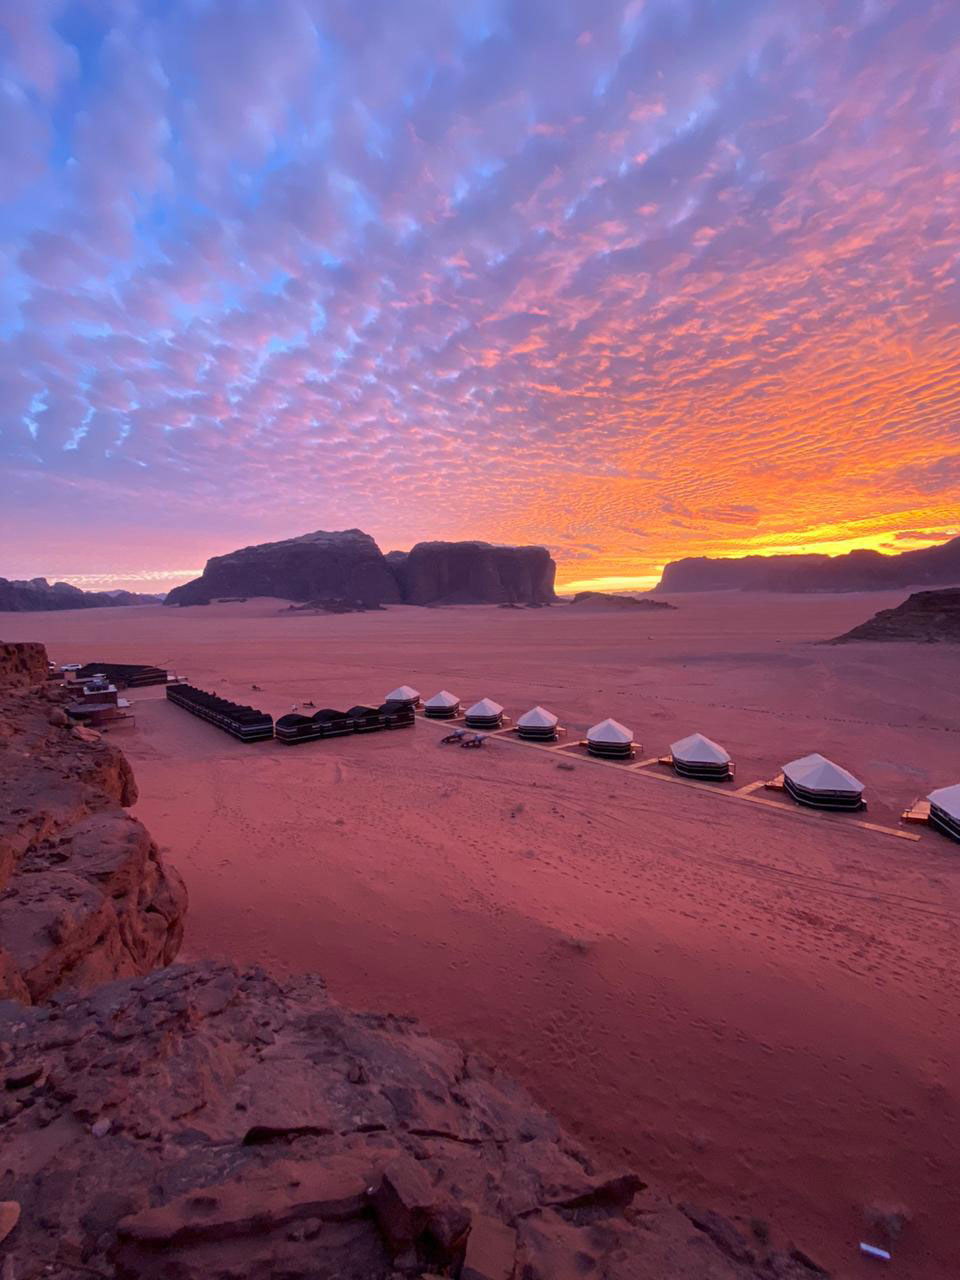 A purple and orange sunset over the desert where permanent tents are set up among sand dunes